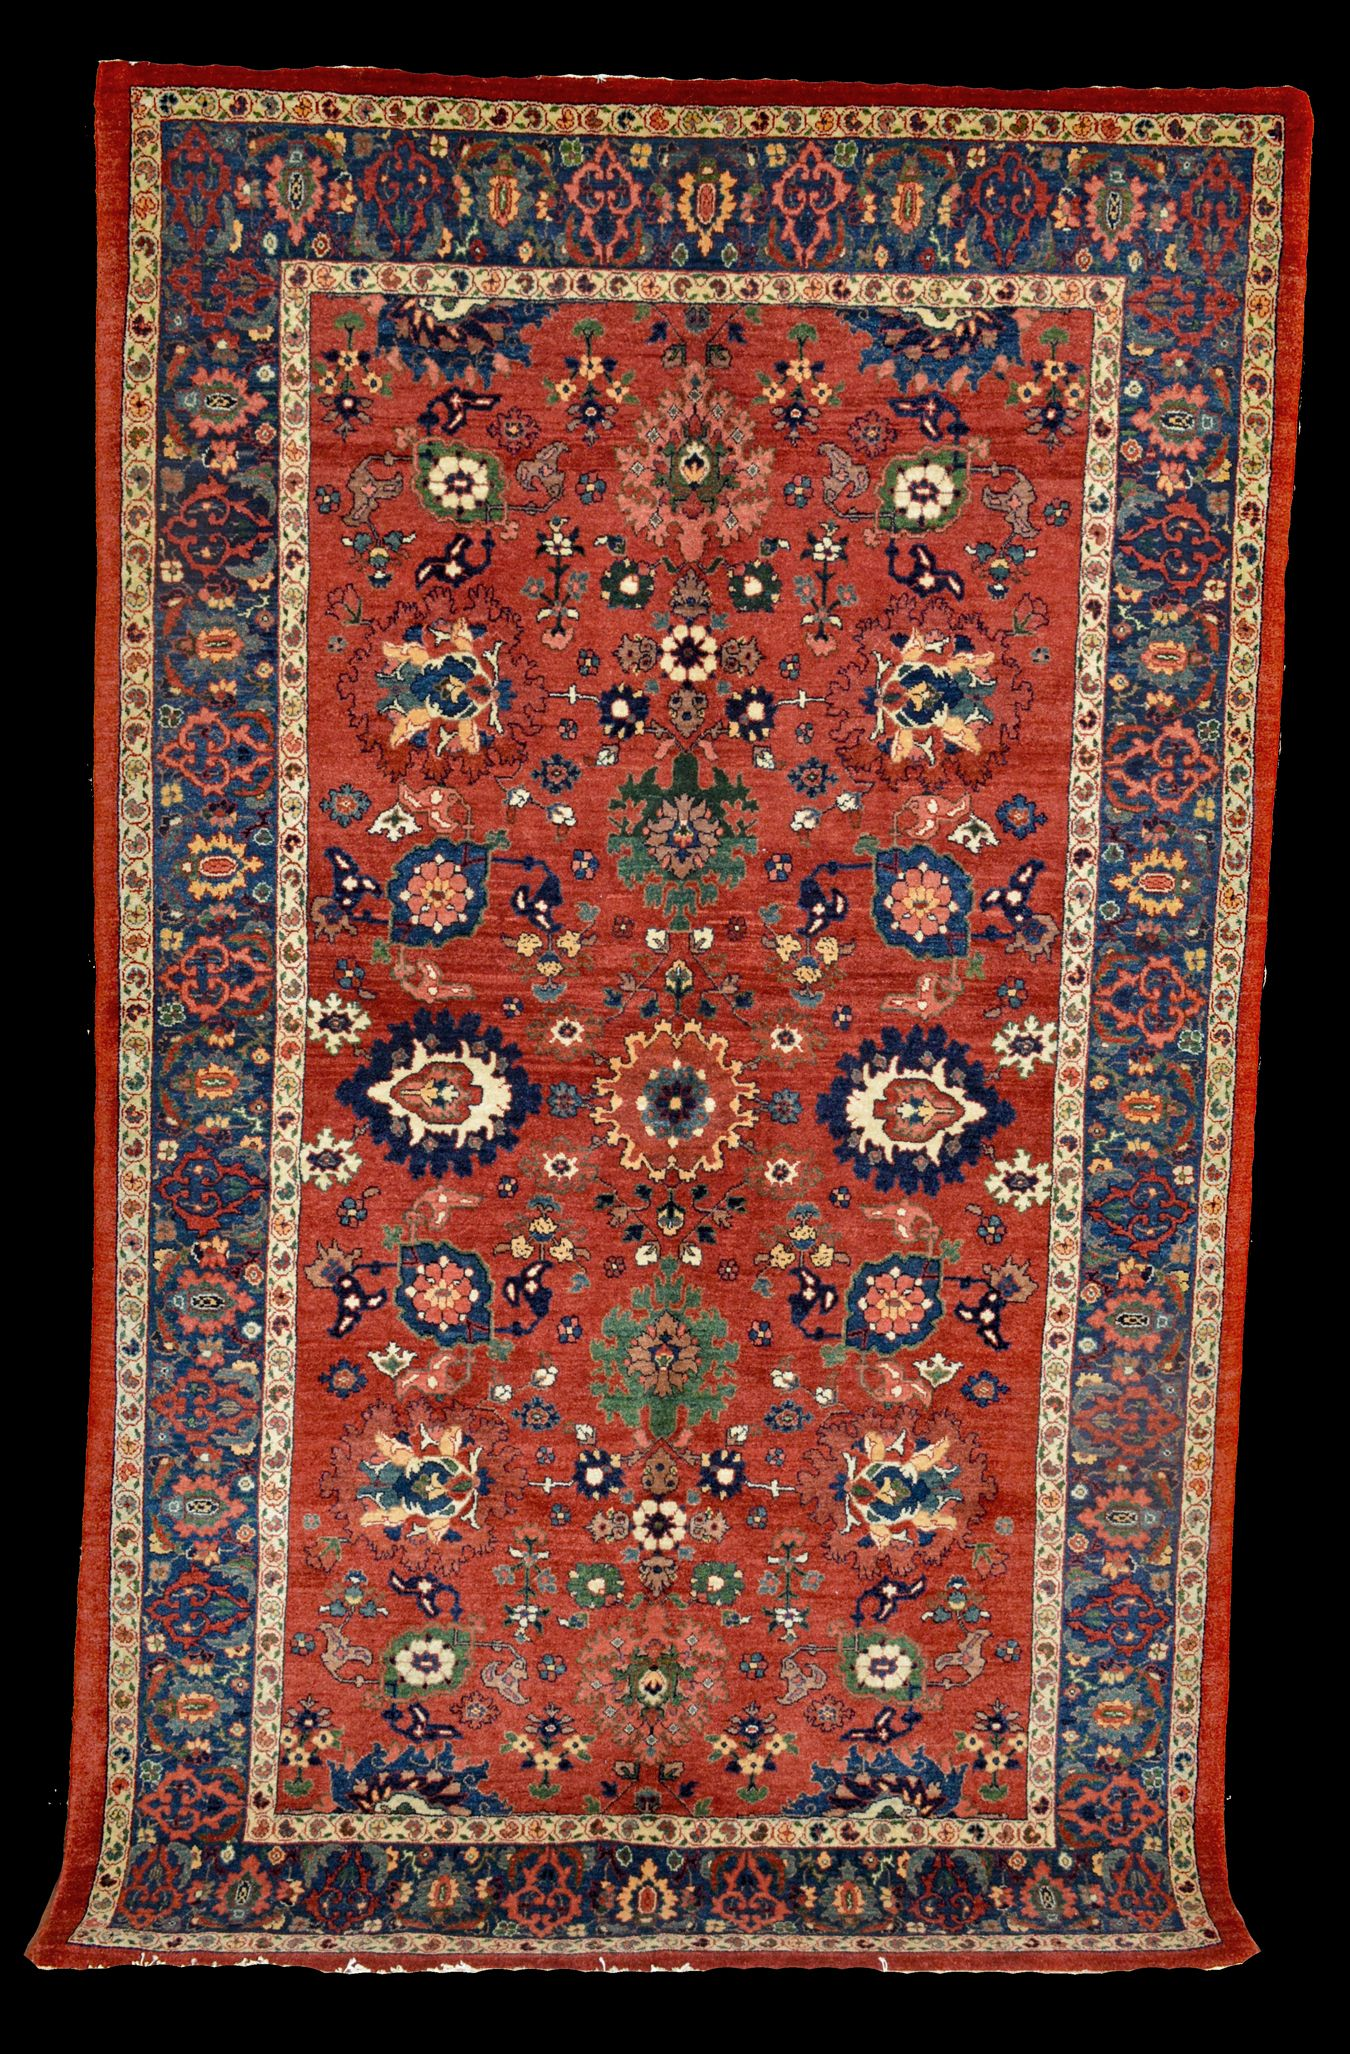 A Contemporary Genuine Persian Bidjar Rug With The Harshang Design On Terra Cotta Color Field New Natural Dye Oriental Rugs Boston Ma Area Natick